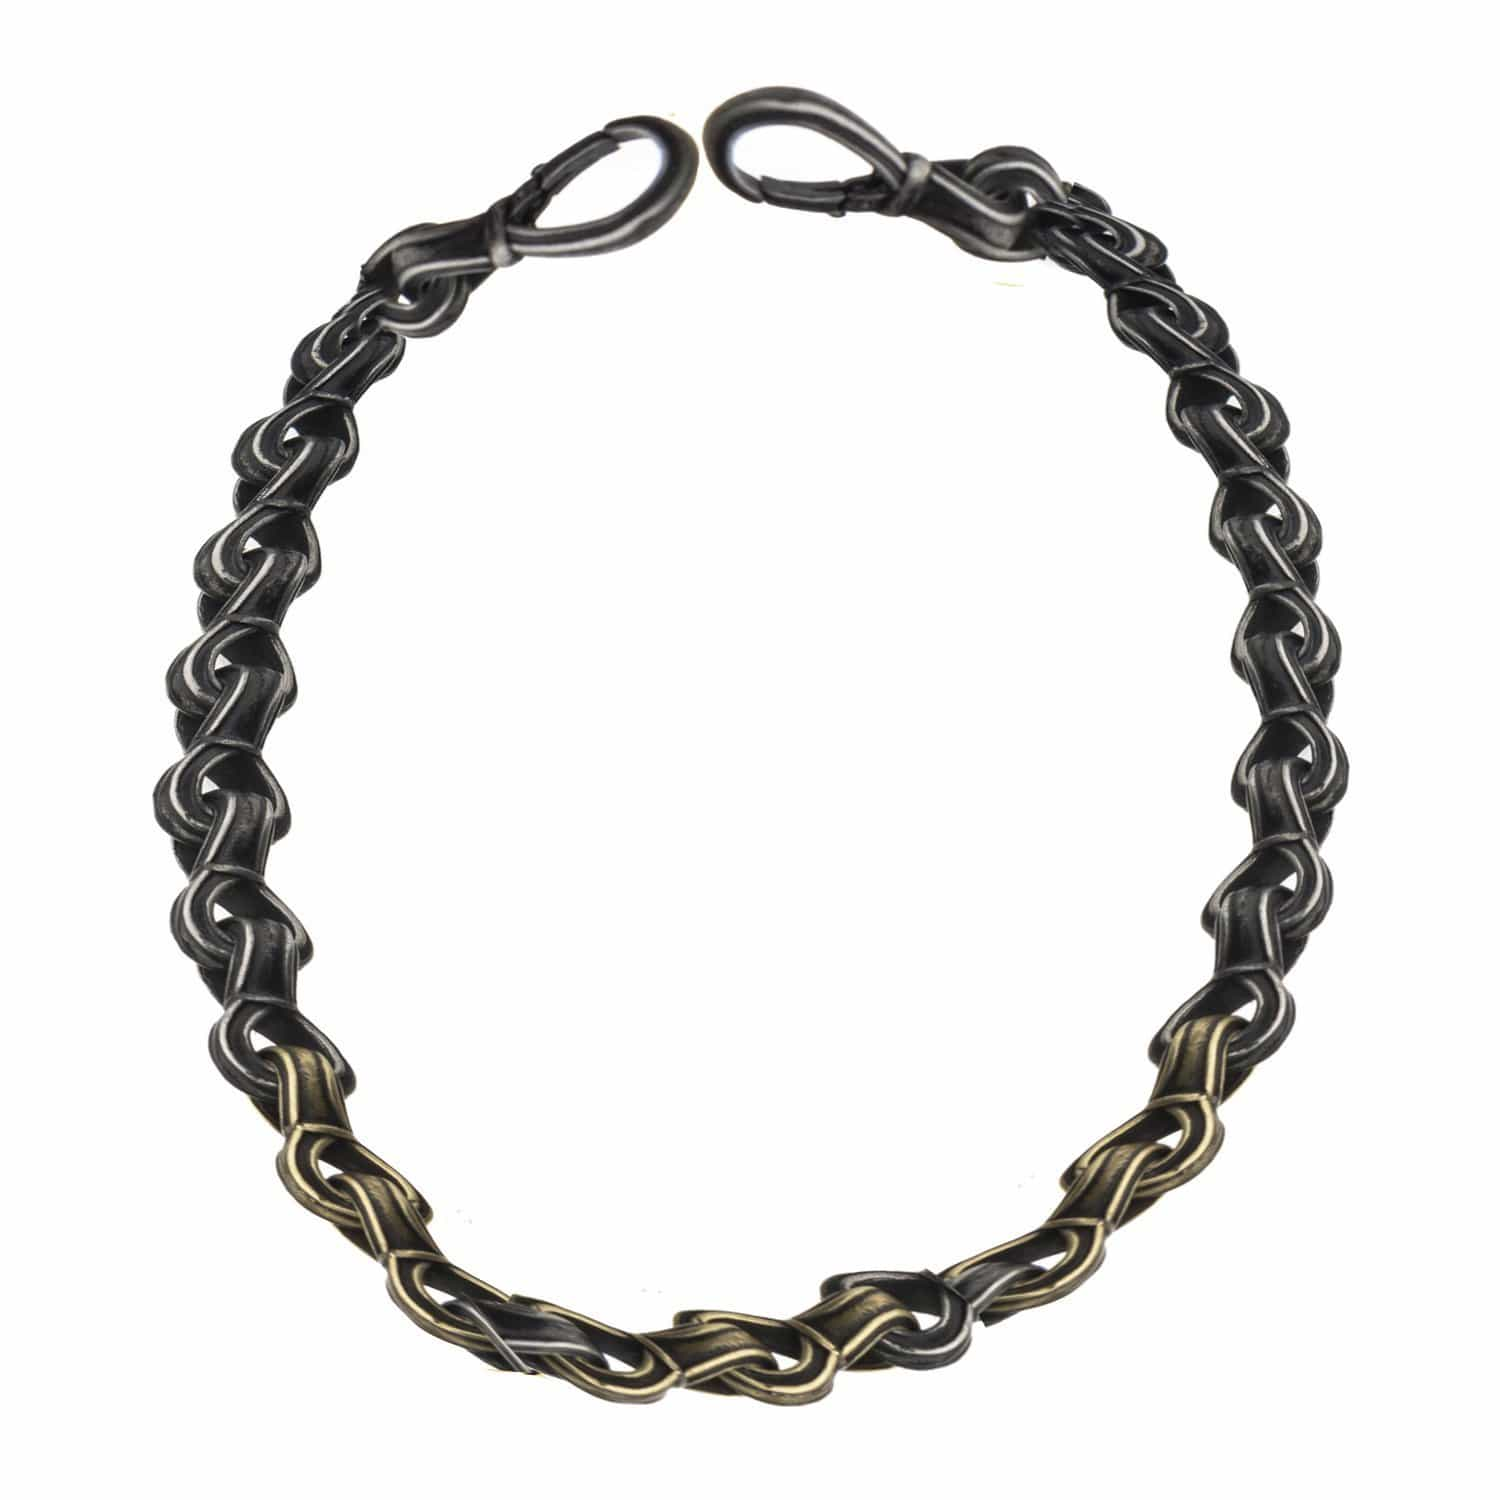 Gold & Silver Stainless Steel Oxidized Finish Detailed Curb Chain Link Bold Bracelet